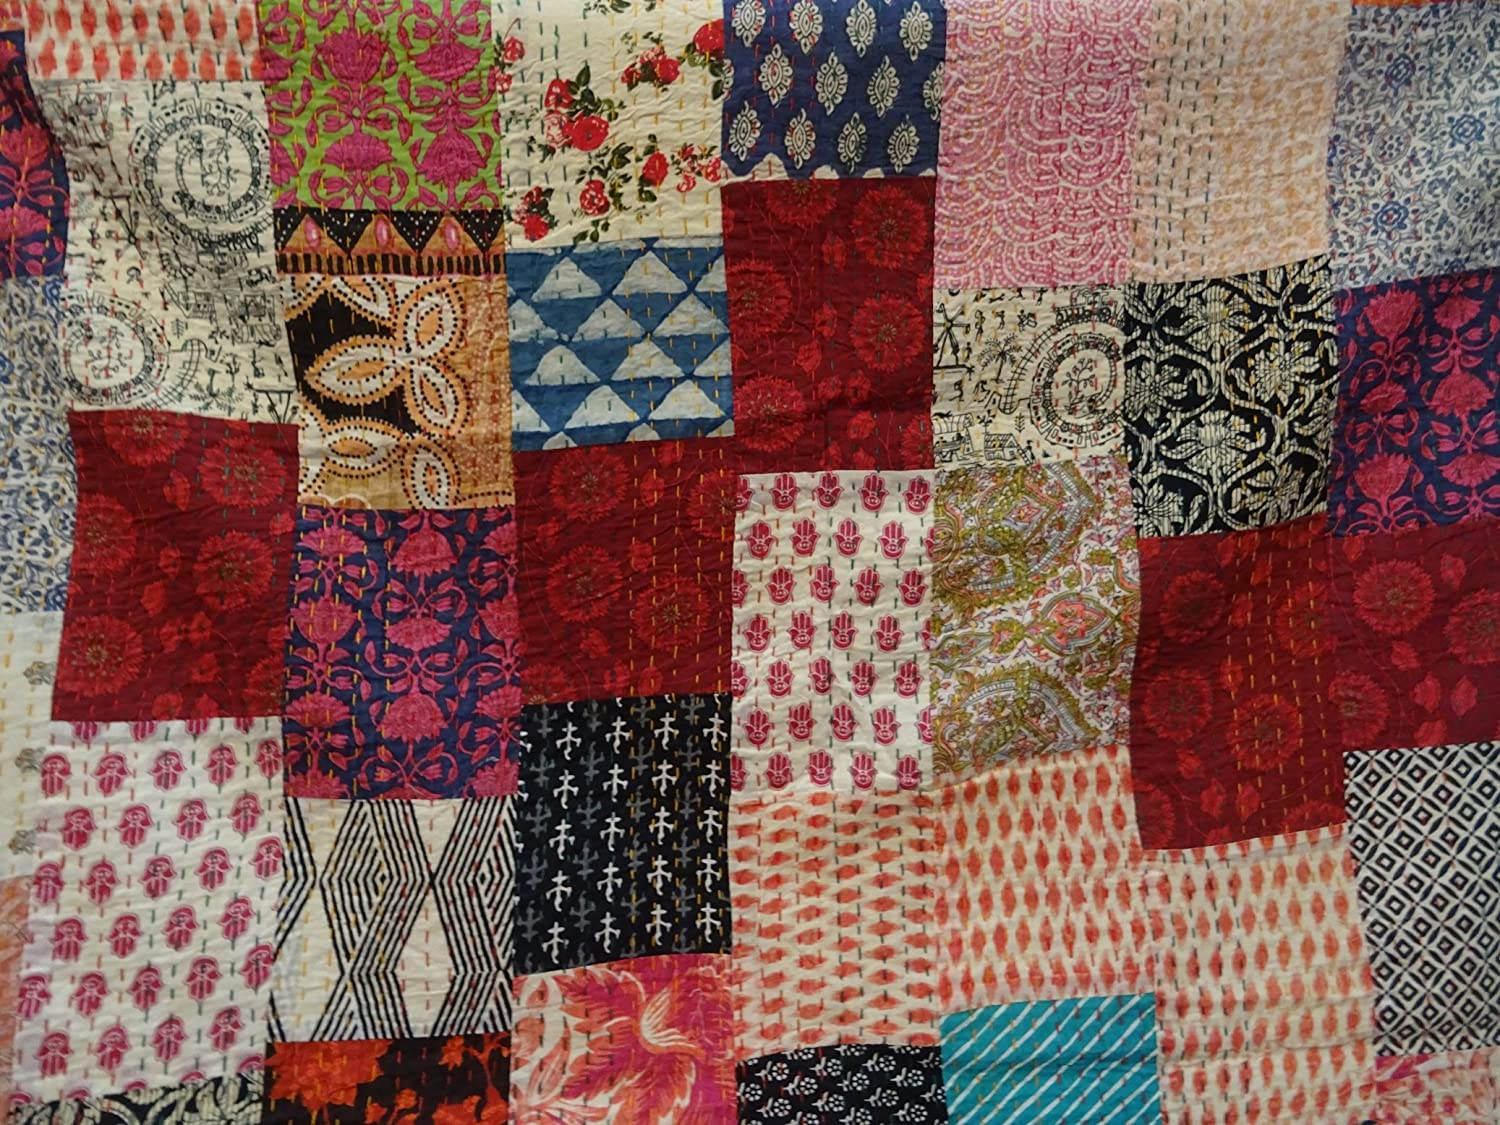 Tribal Asian Textiles Multi color Block Print Patchwork Queen Size Kantha Quilt King Kantha bedspread Bed Cover Bohemian Bedding Kantha Size 90 Inch x 108 Inch 1111 by Tribal Asian Textiles Kantha Blanket